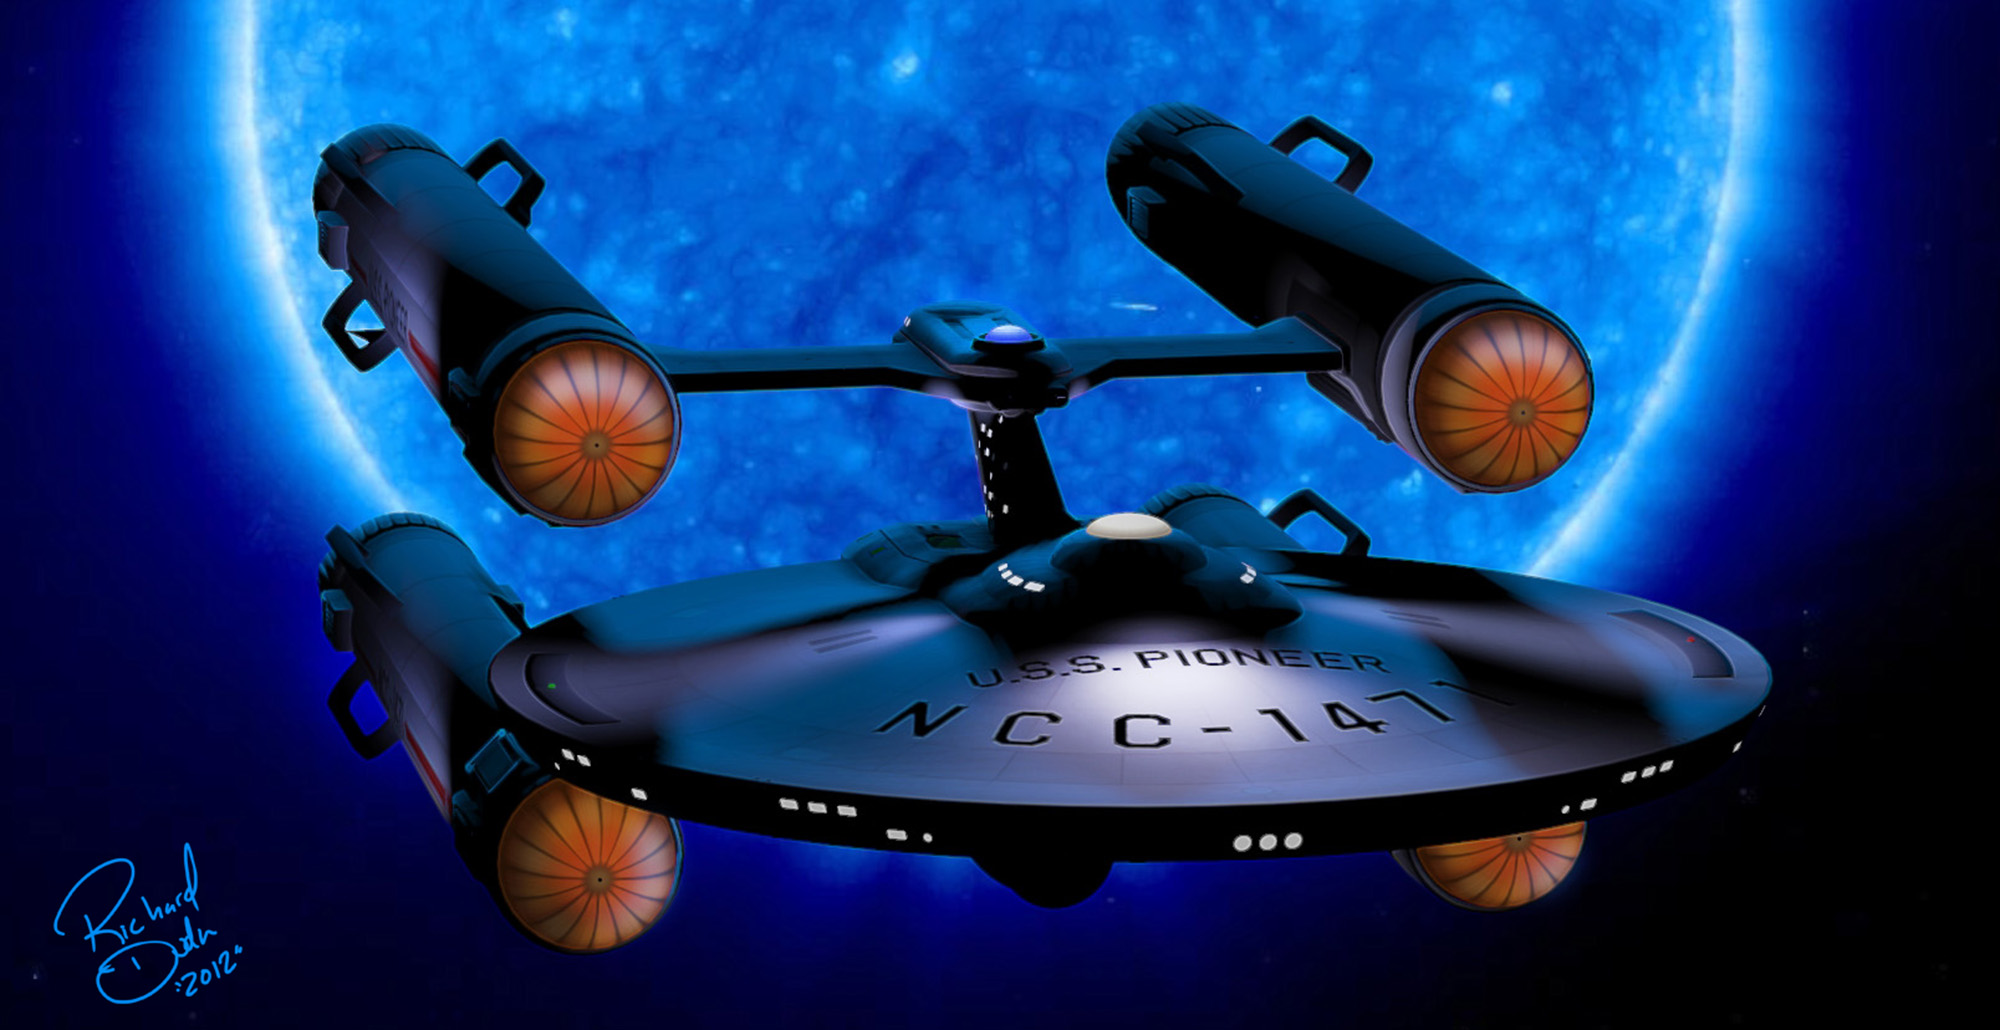 USS Pioneer: These are the voyages of a LightWave starship ...